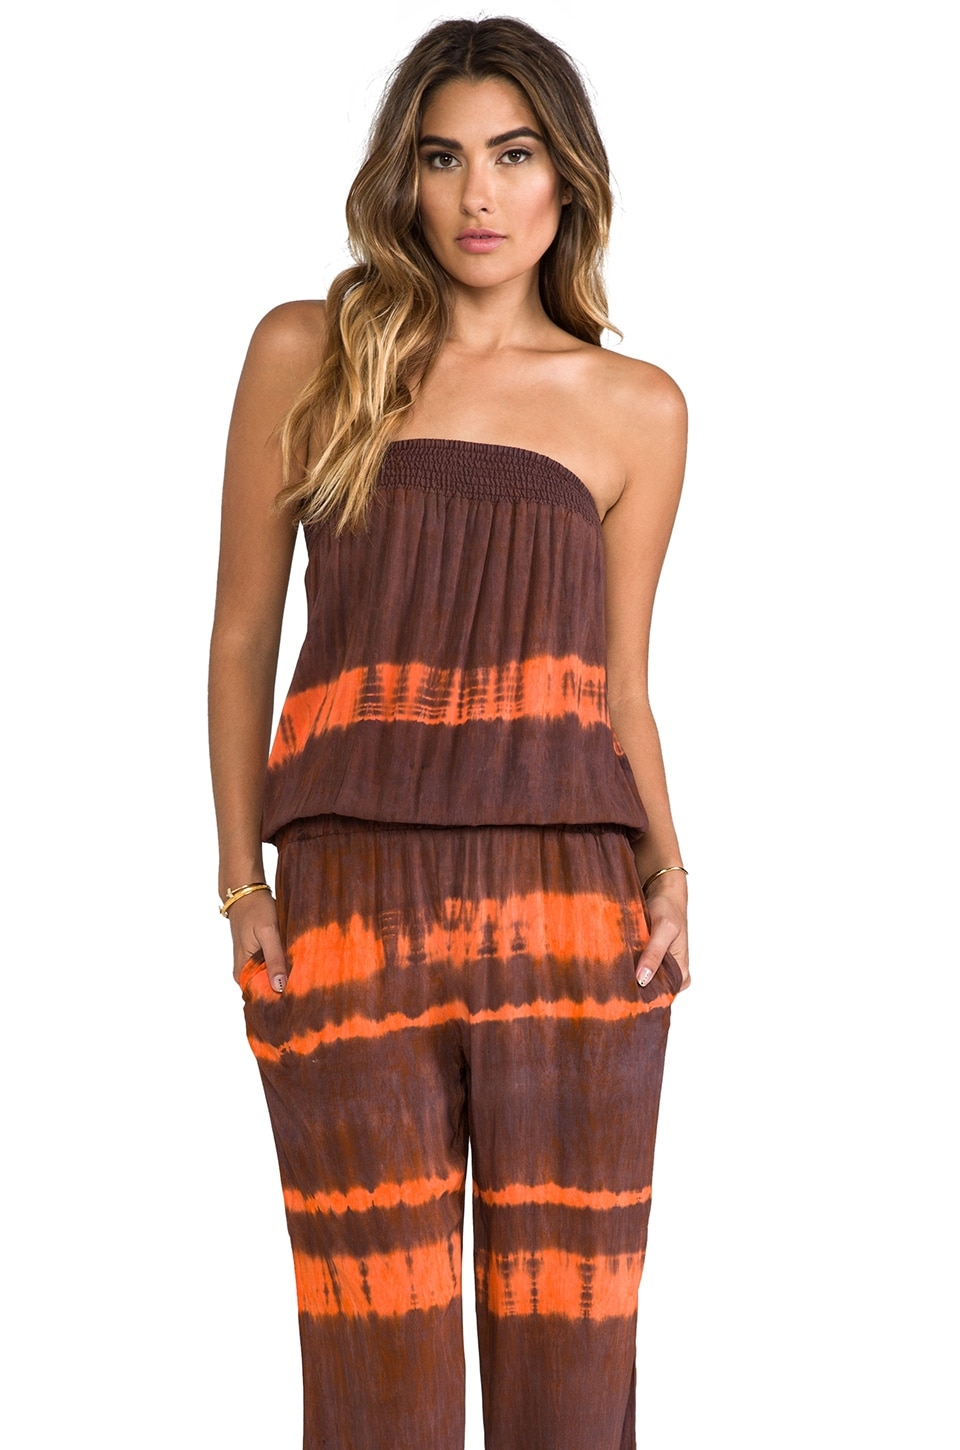 Blue Life Tie Bottom Jumper in Copper Tie-Dye